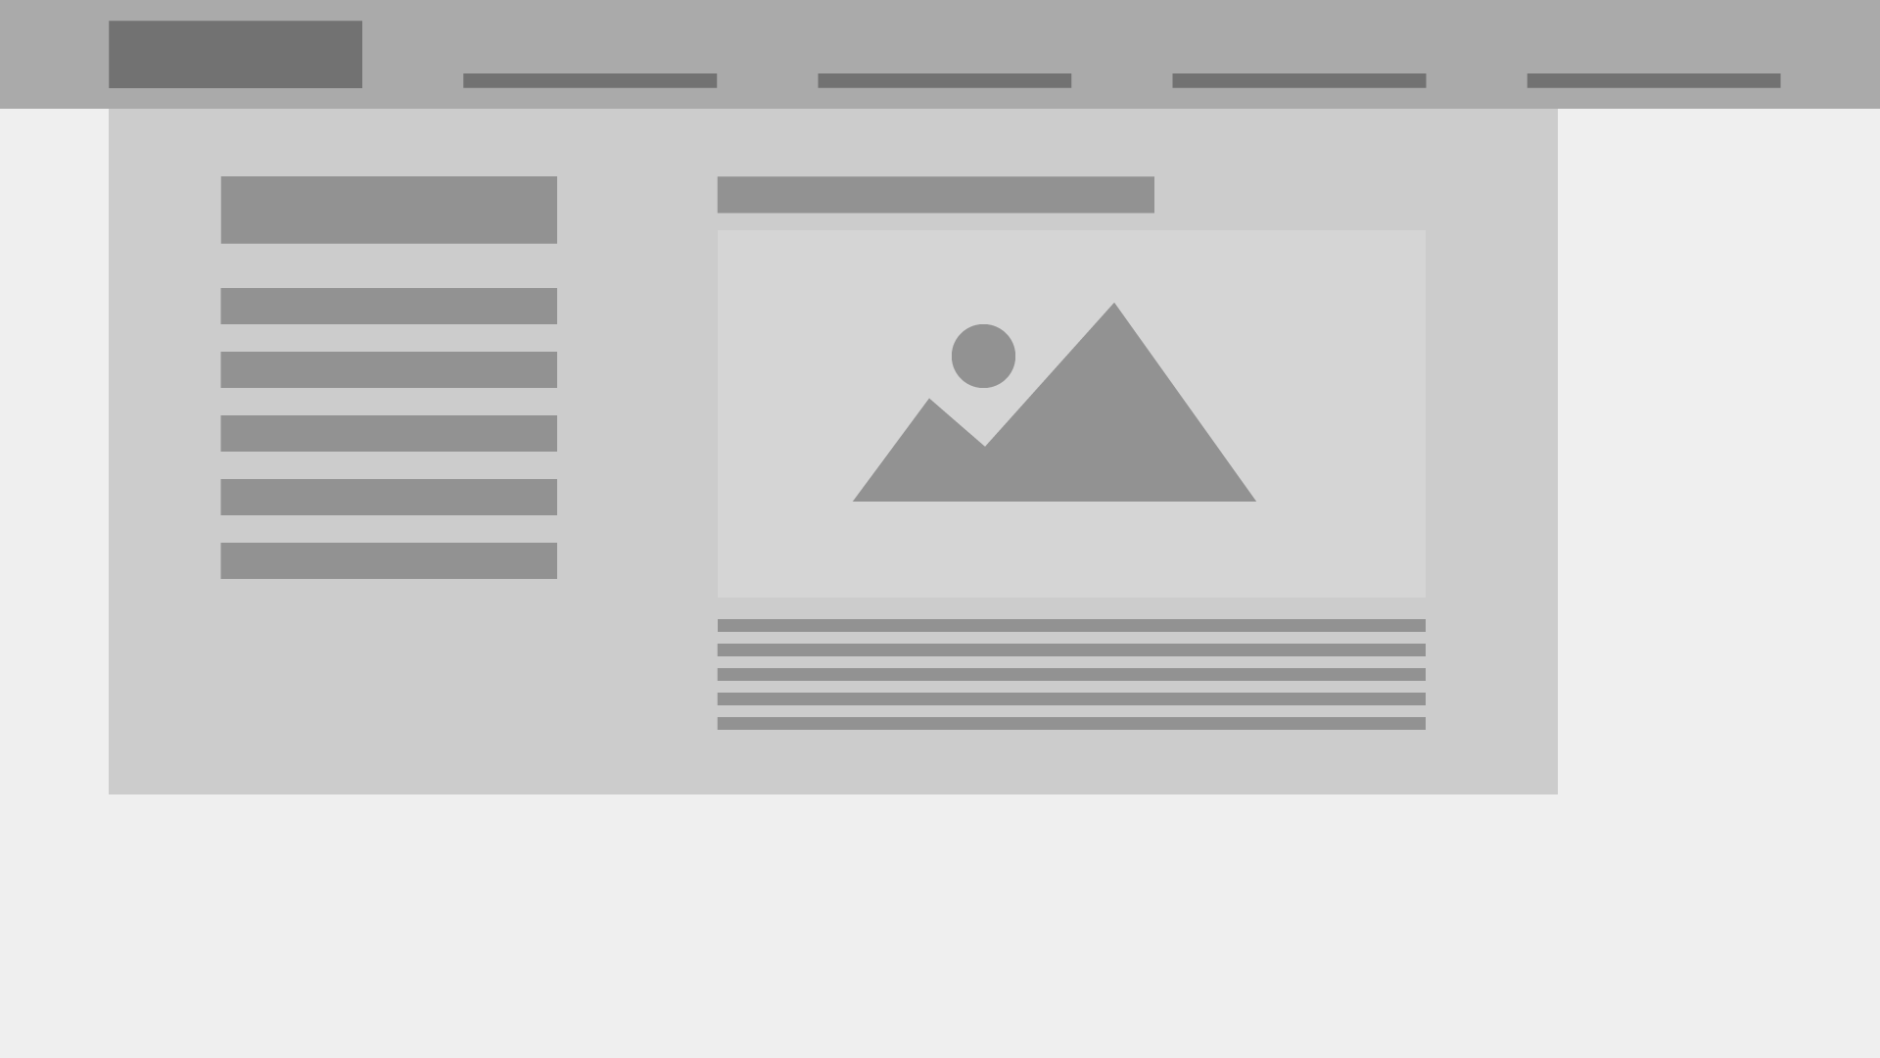 A wireframe image is shown that represents a low fidelity mega navigation. The left side symbolizes different page options the user can go to and the right side shows a highlight that includes an image.